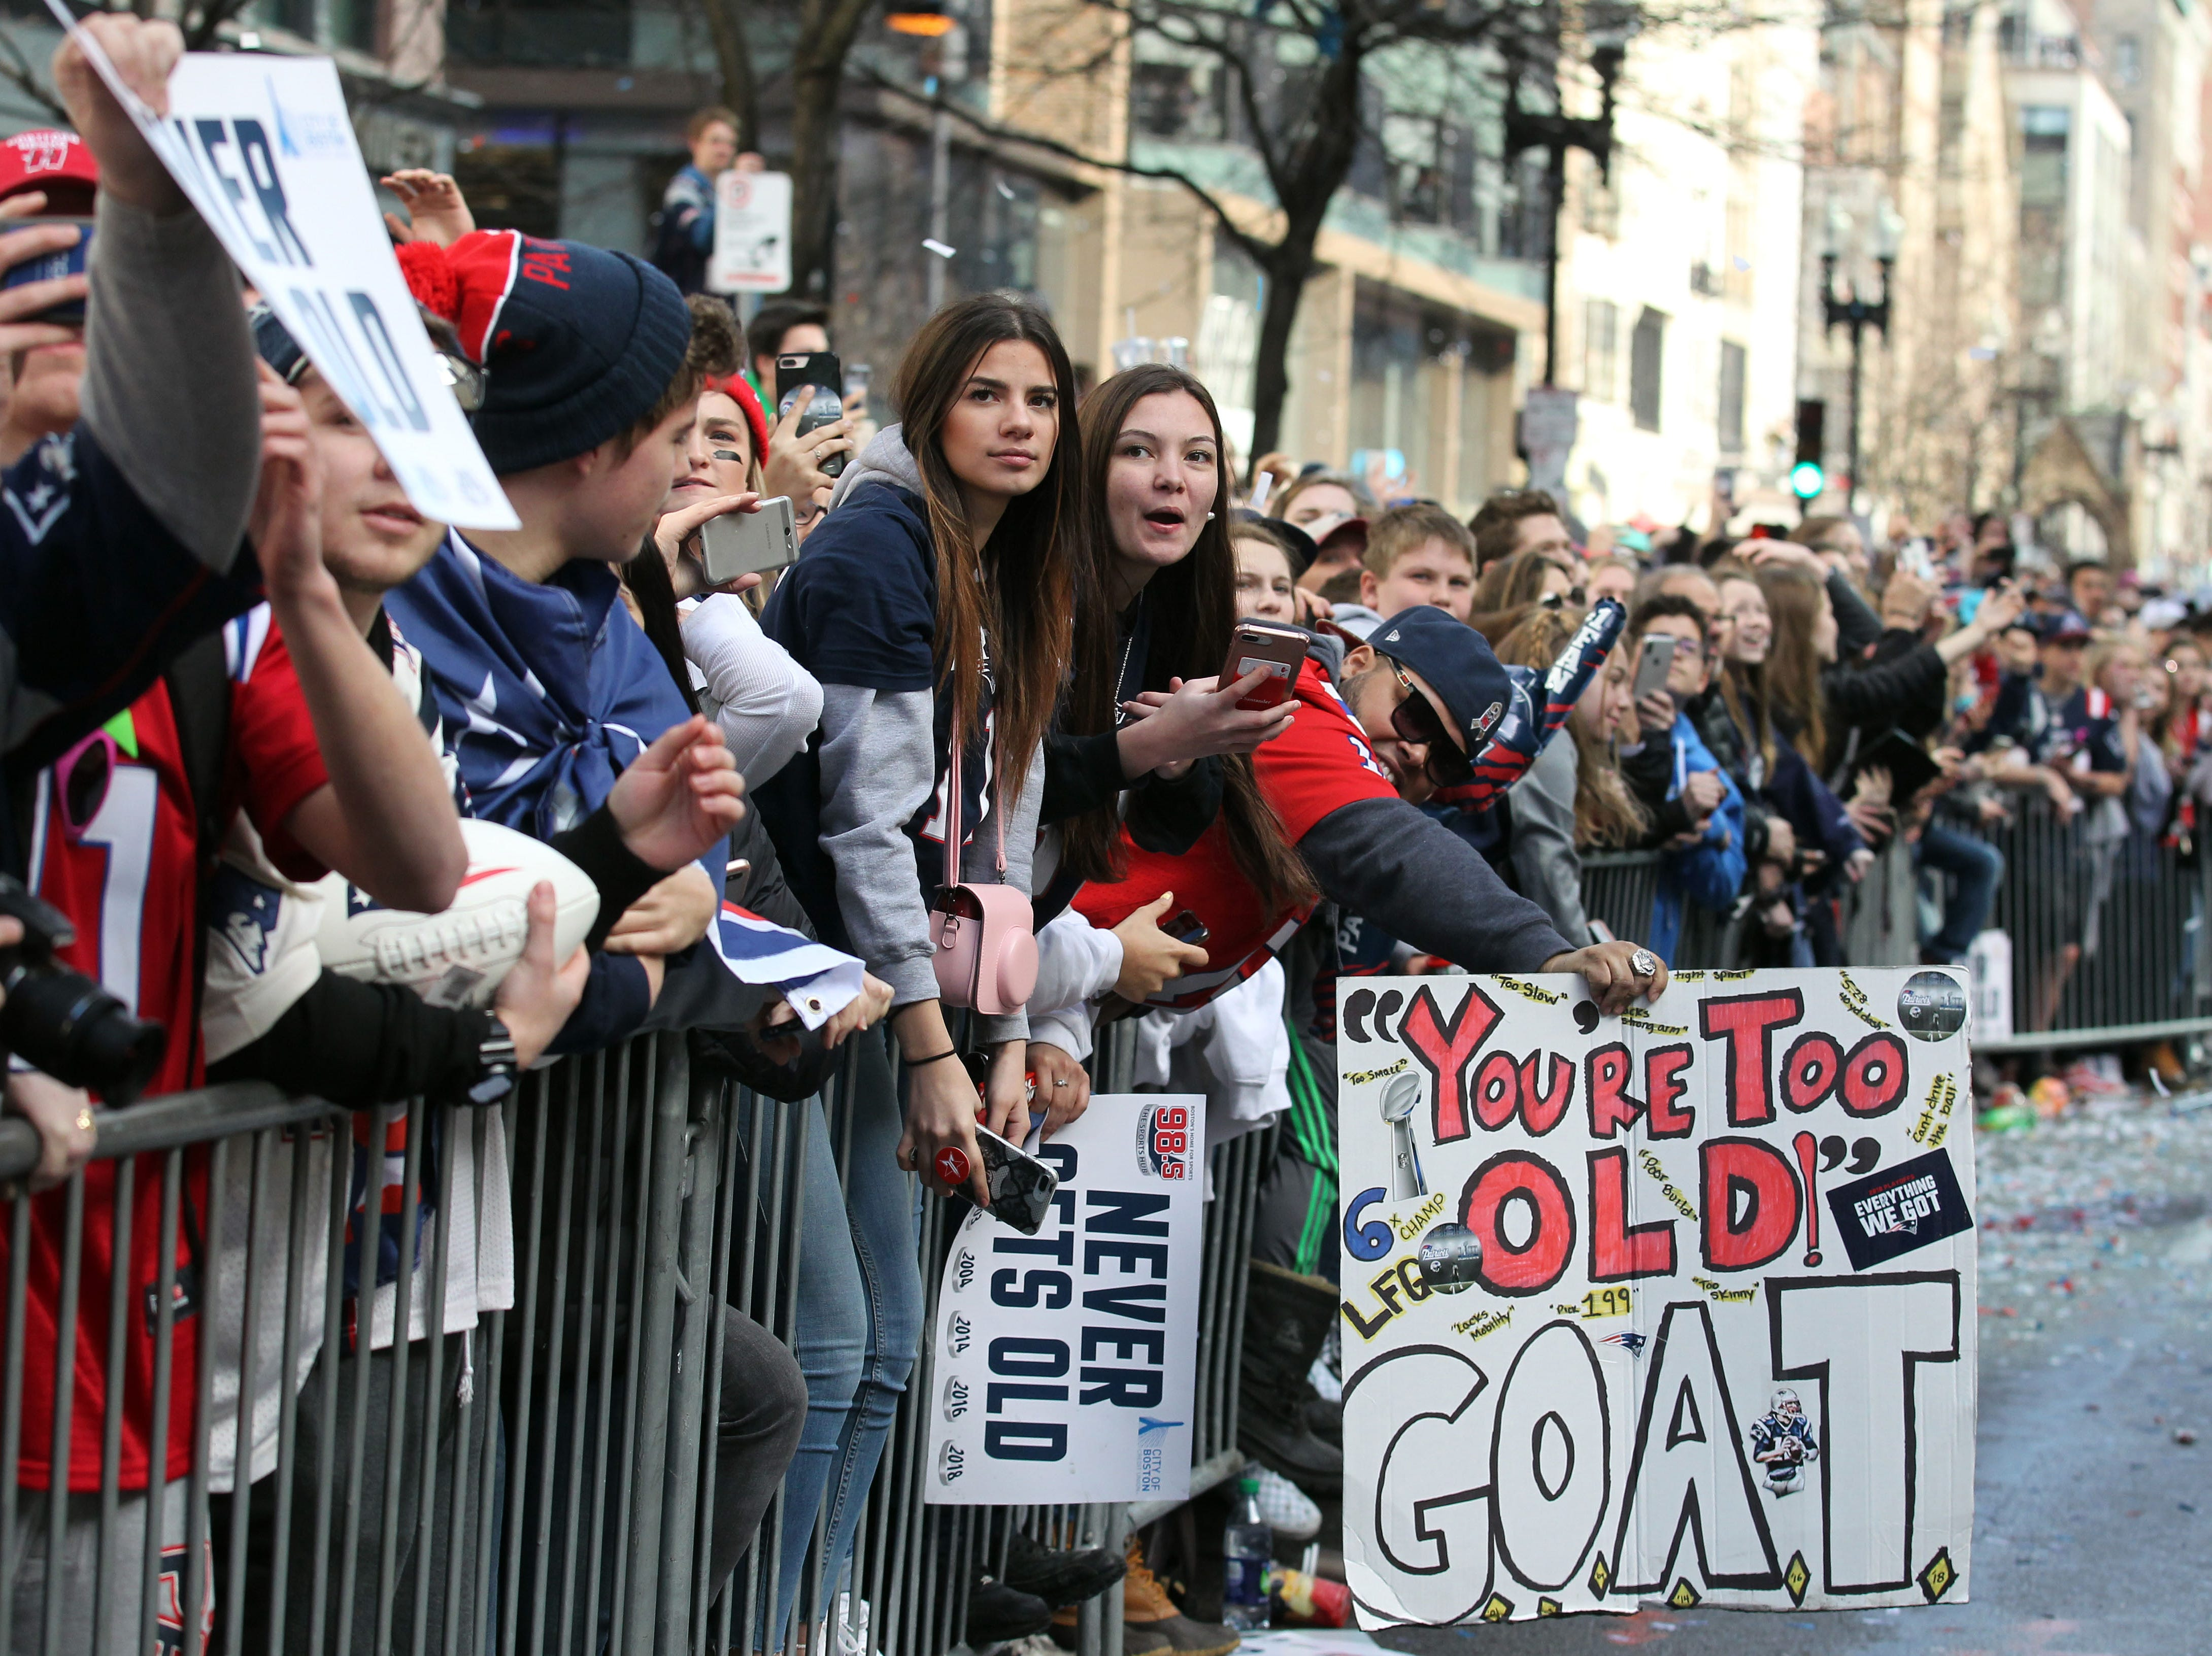 New England Patriots  fans cheer on their team during the Super Bowl LIII championship parade.